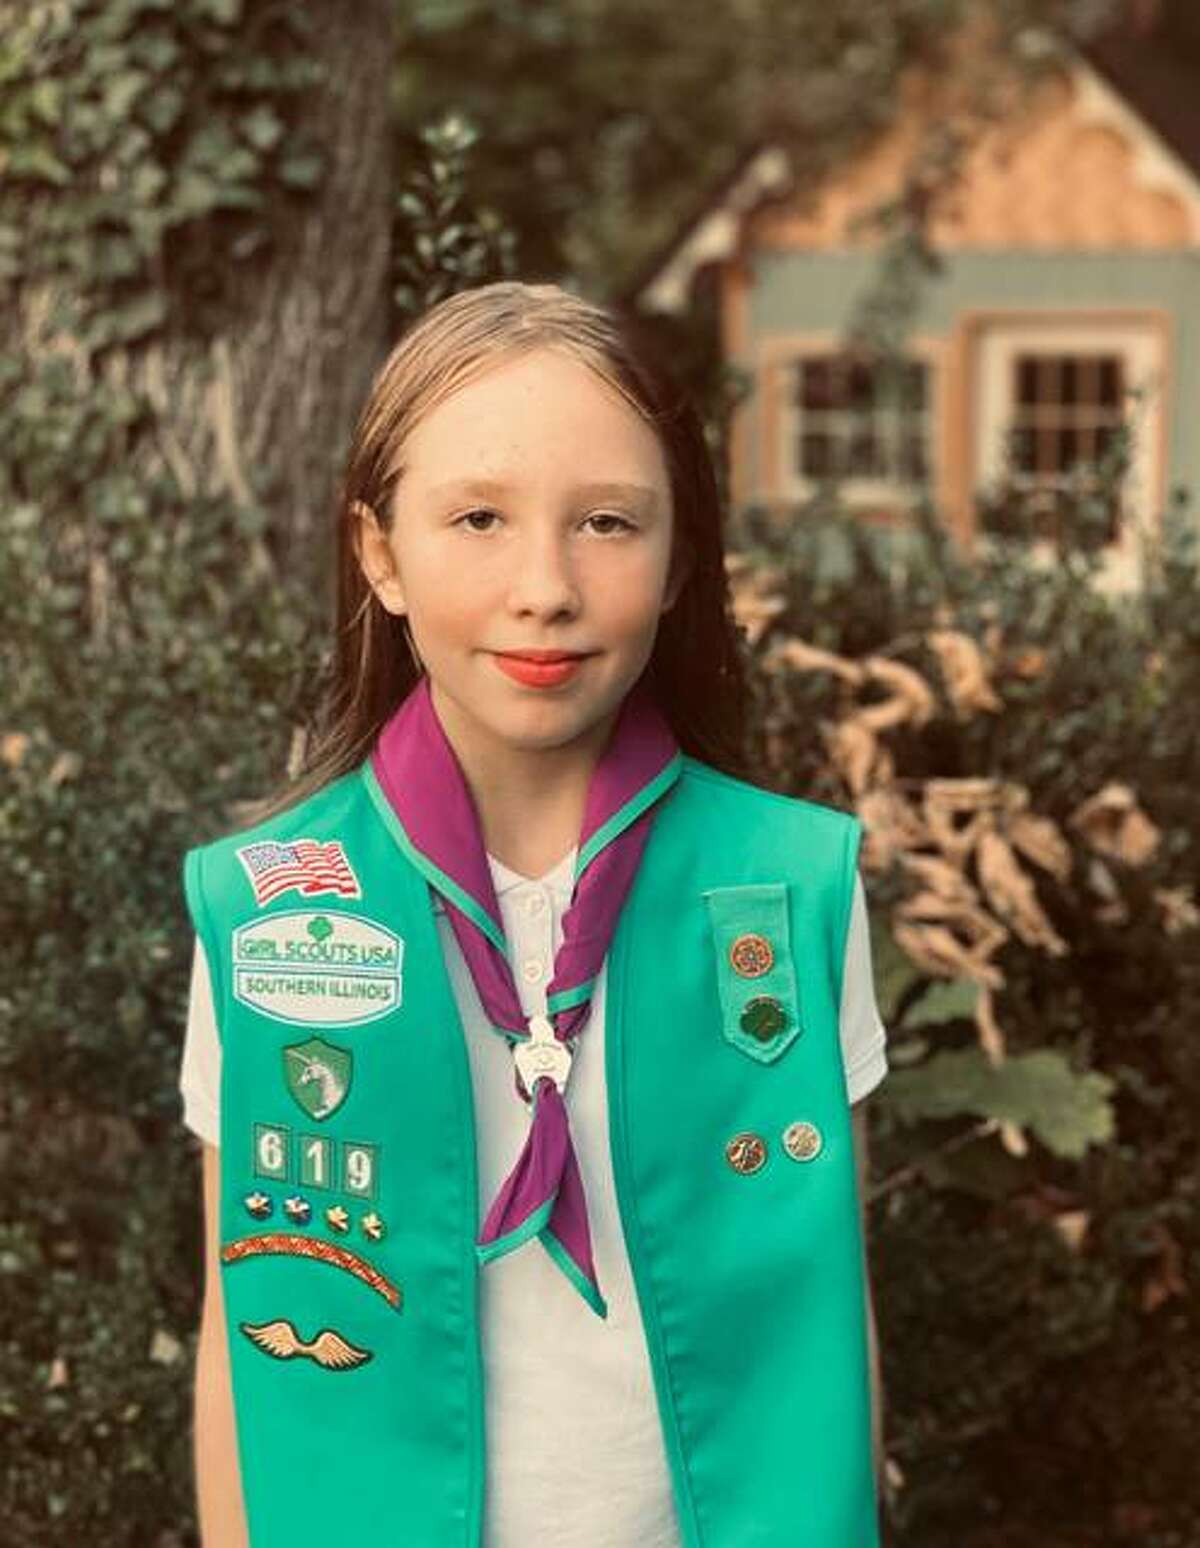 O'Fallon Girl Scout Gretel Ulmer, a third-grader, received a Medal of Honor.